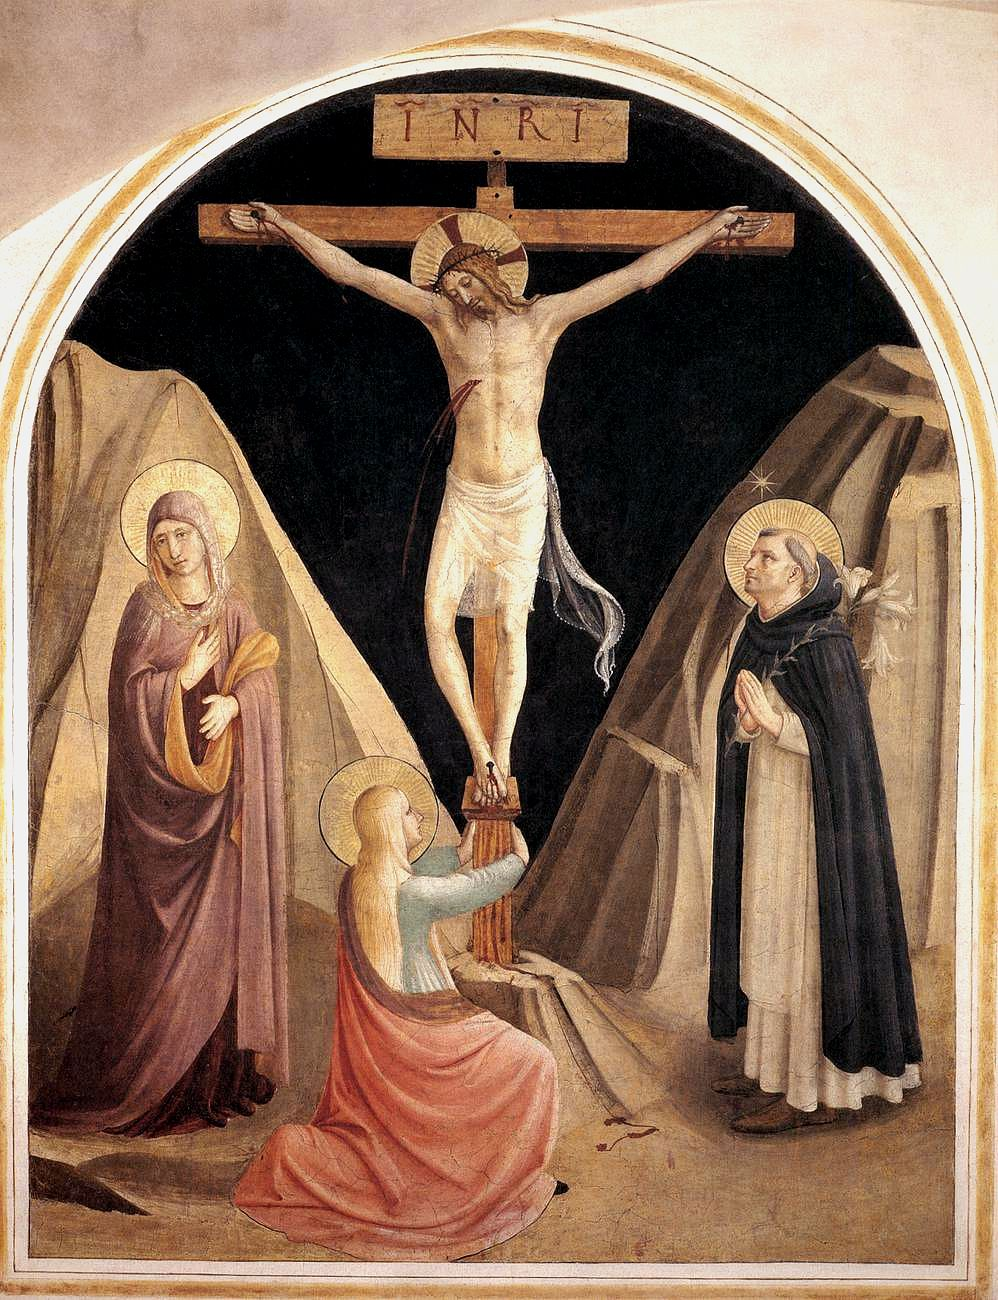 fra_angelico_crucifixion_with_the_virgin_mary_magdalene_and_st_dominic_cell_25.jpg